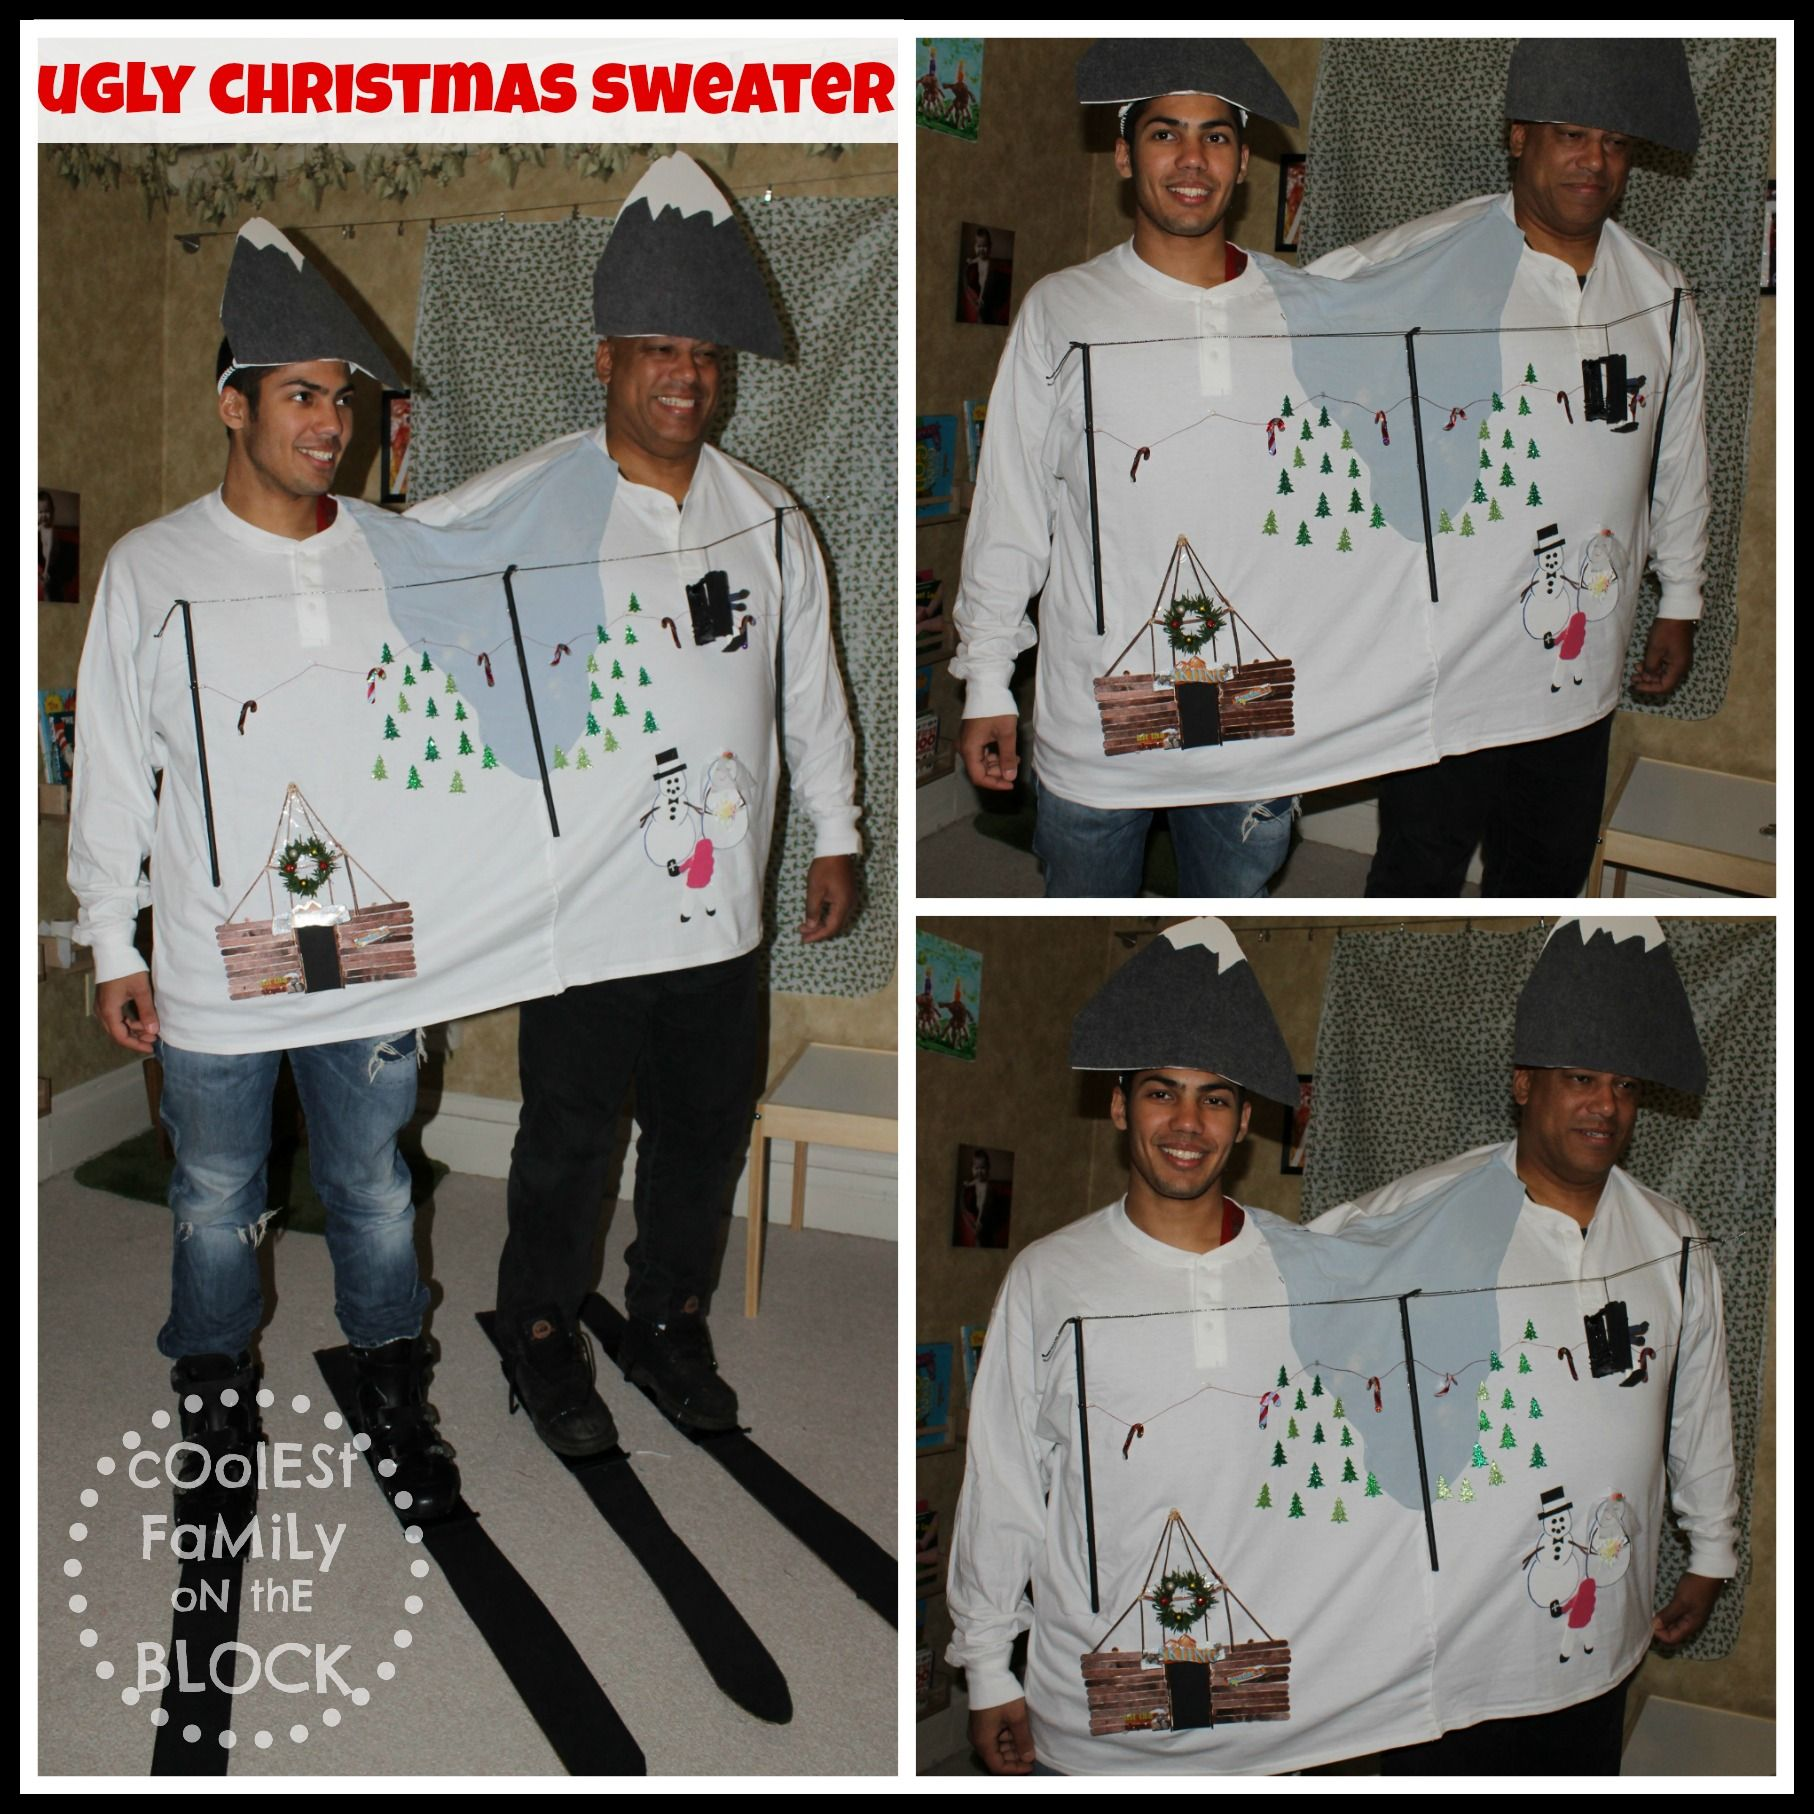 two headed ski resort ugly christmas sweater coolest family on the block christmas tradition tacky